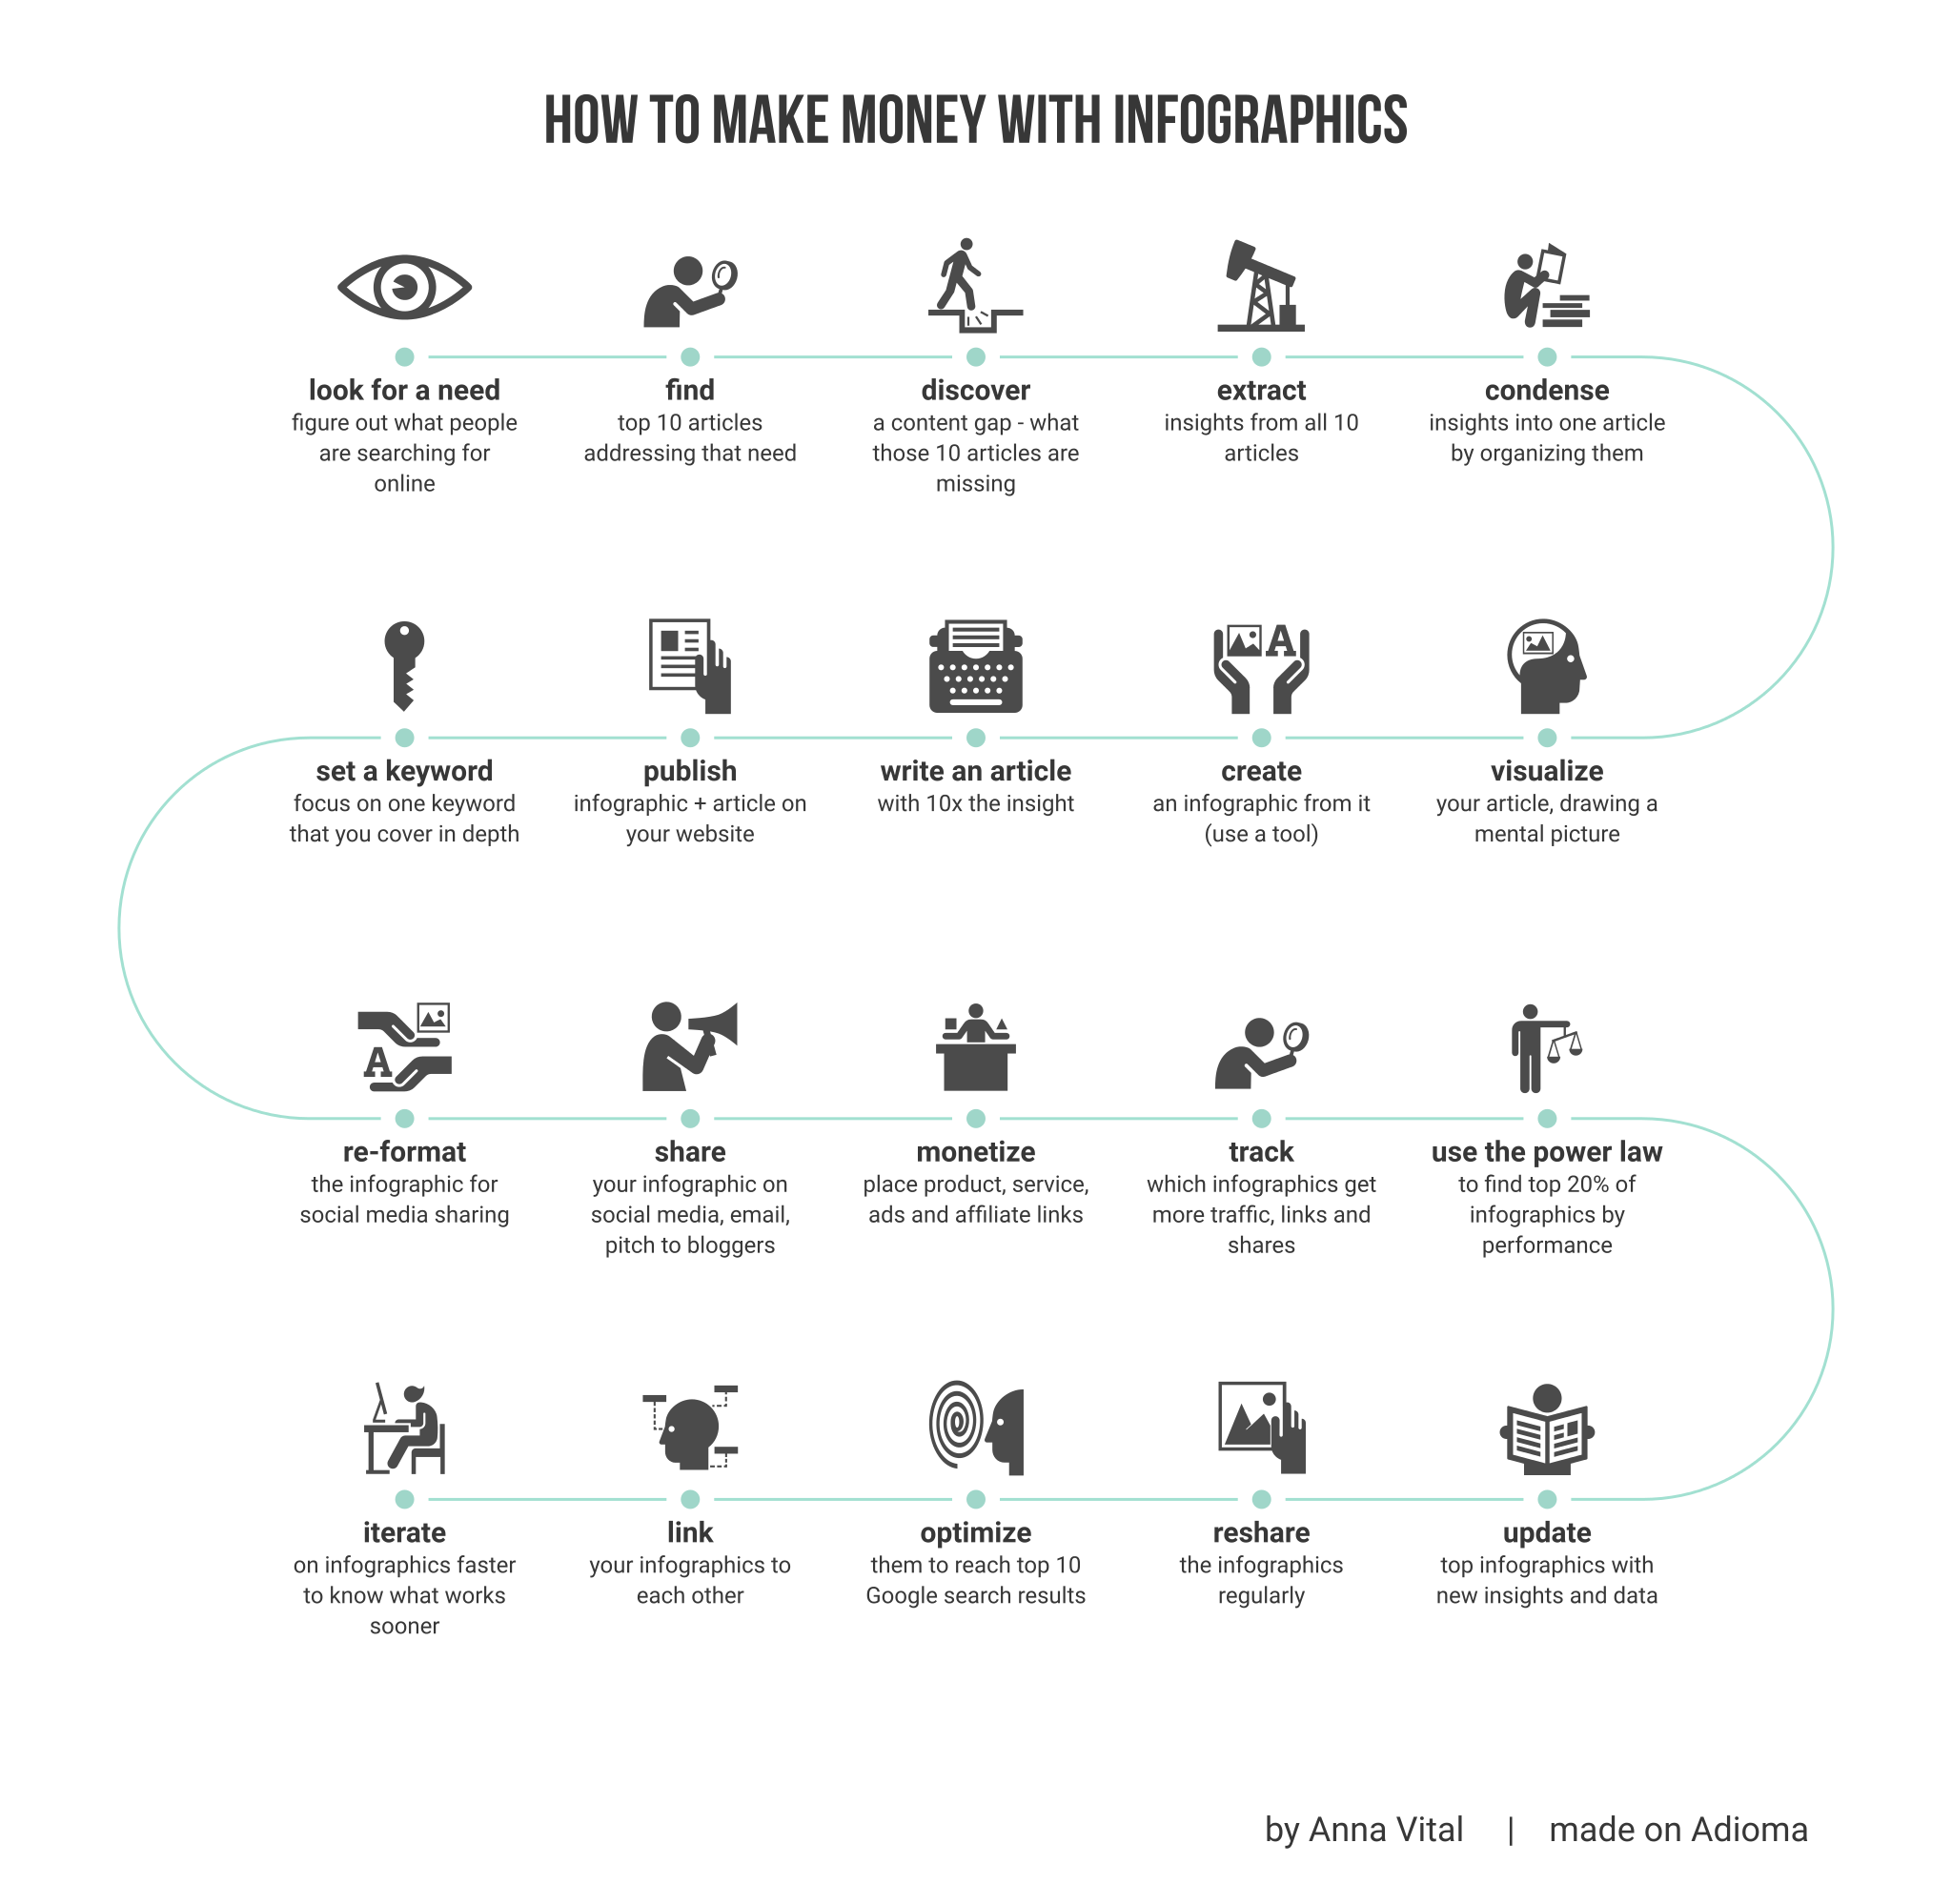 how to make money with infographics